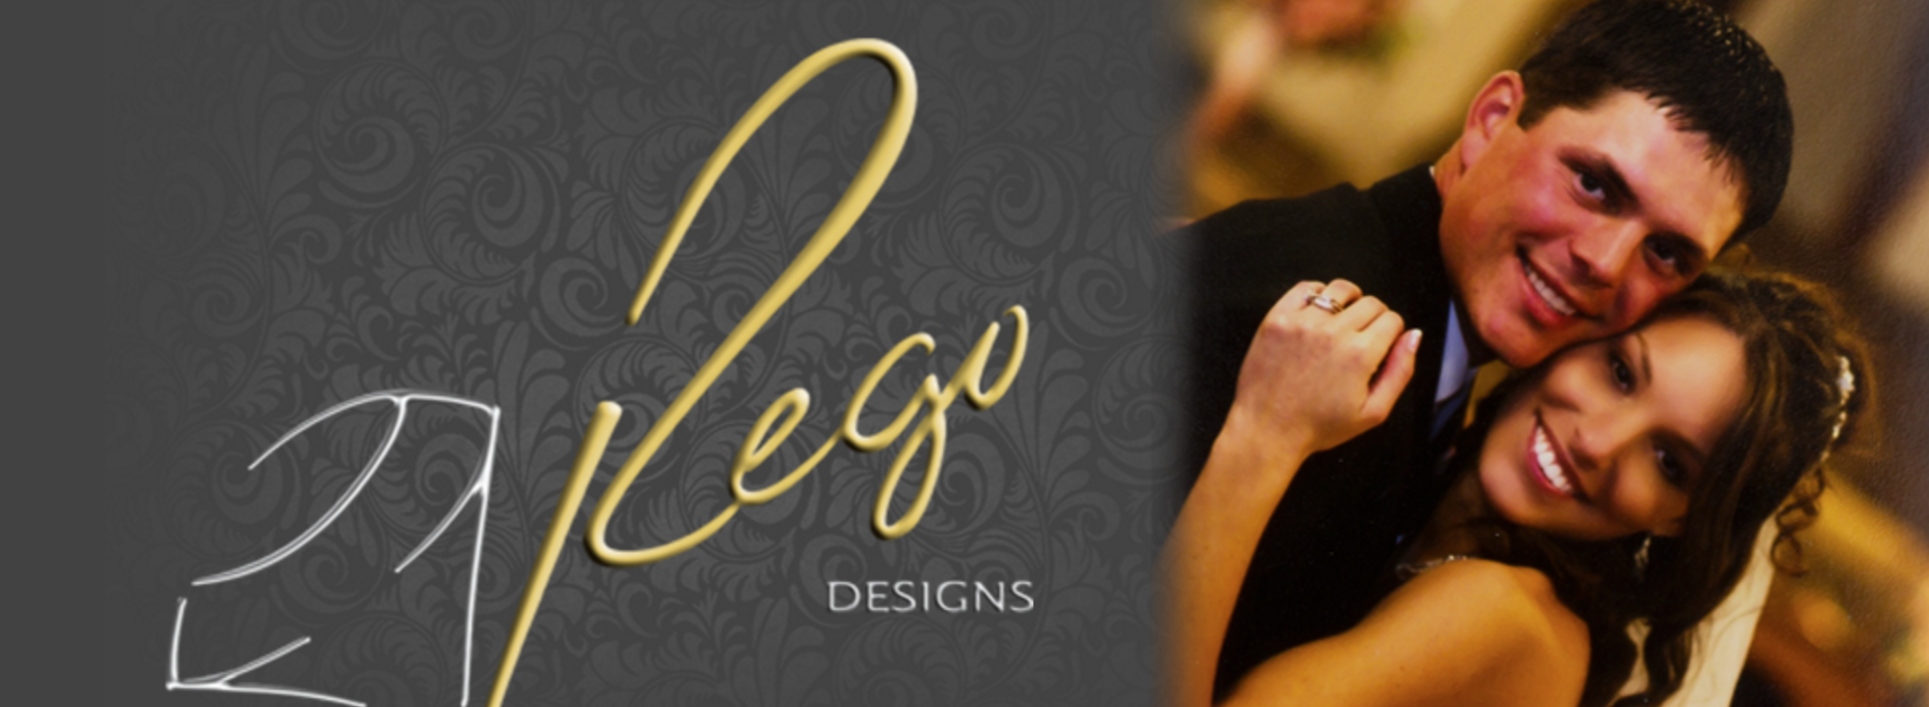 Eaton's Fine Jewelry Rego Designs